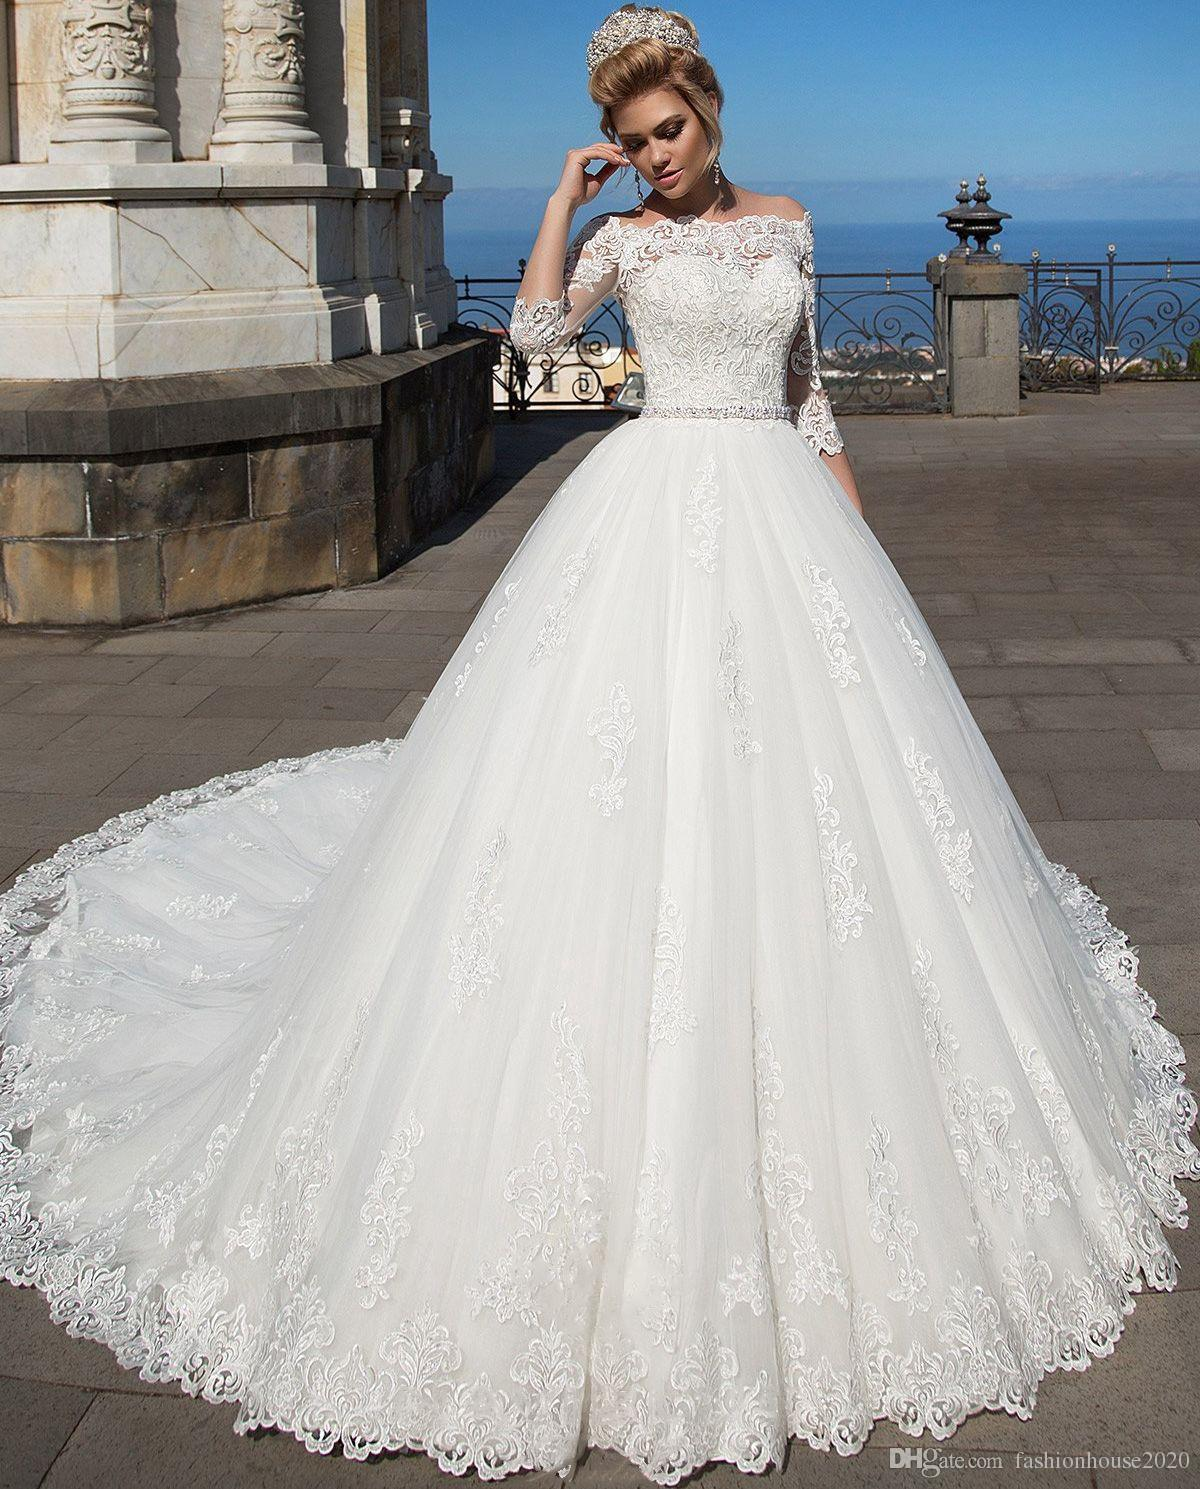 Wedding White Dresses: 2018 Cheap Elegant White Lace Ball Gown Wedding Dresses